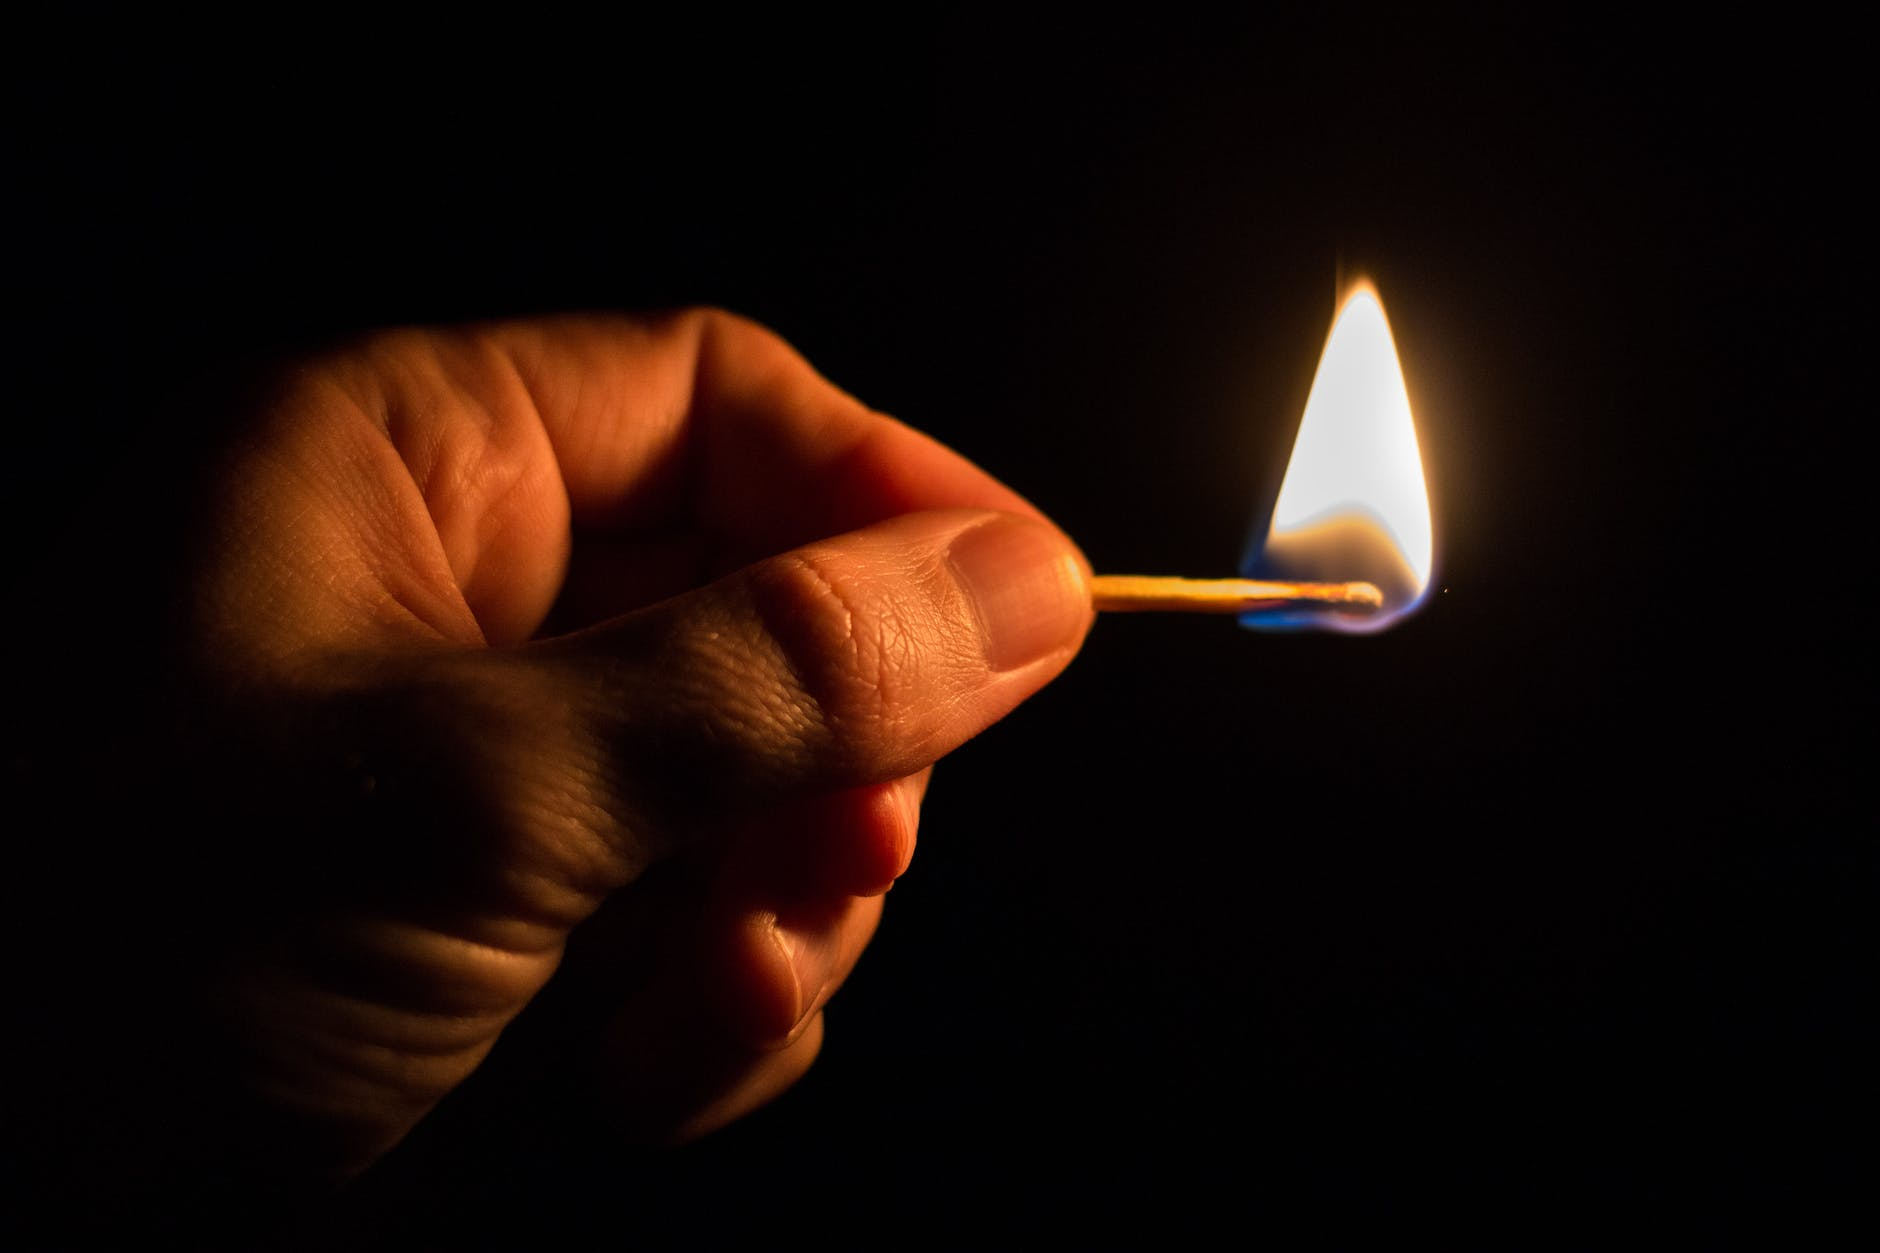 A hand holds a burning match with a black background